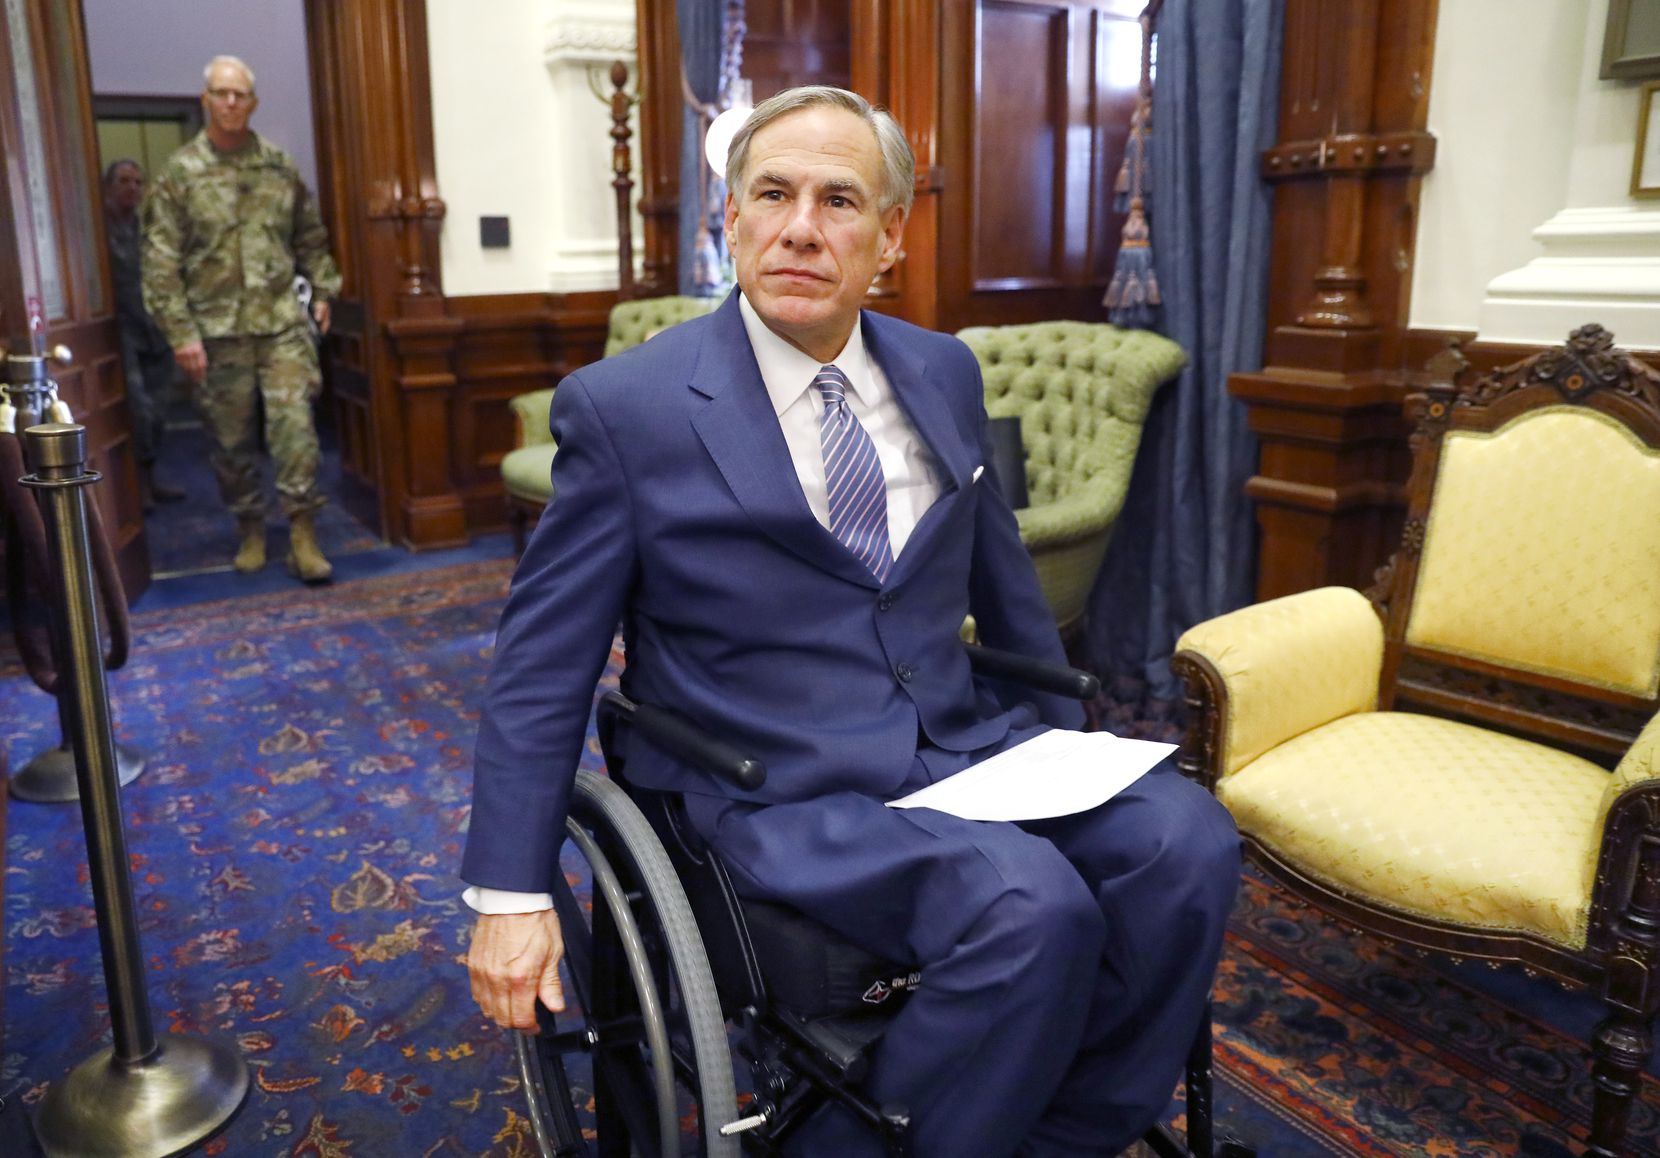 Gov. Greg Abbott, shown entering a March 29 coronavirus news briefing, faces blowback from his party's right wing over his use of the Texas Disaster Act of 1975 to order closures and other COVID-19 precautions. House Republicans have prefiled a dozen measures that would trim a Texas governor's emergency powers.